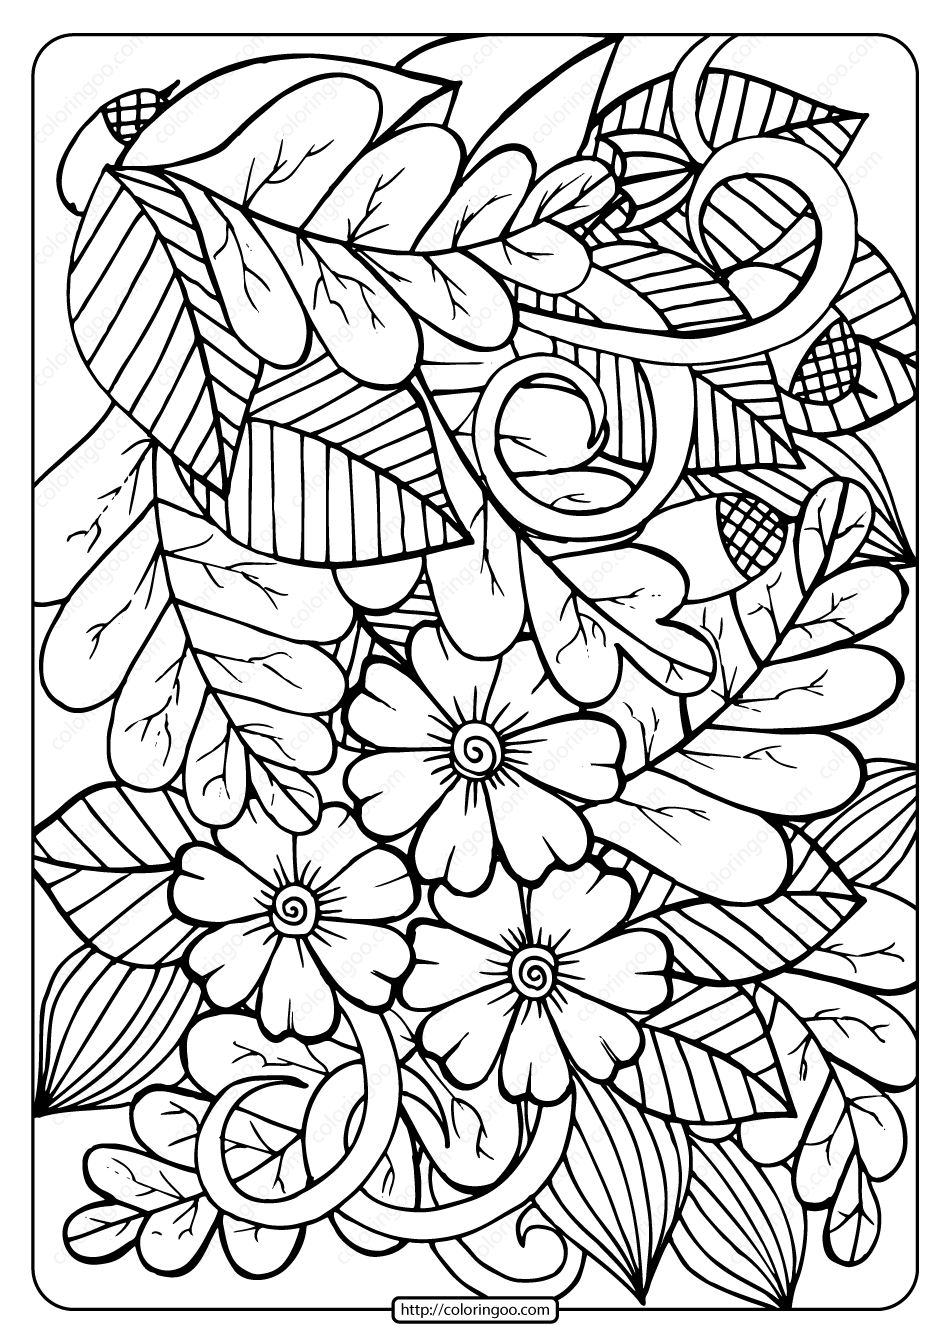 Printable Leaves And Acorns Coloring Page Fall Leaves Coloring Pages Abstract Coloring Pages Crayola Coloring Pages